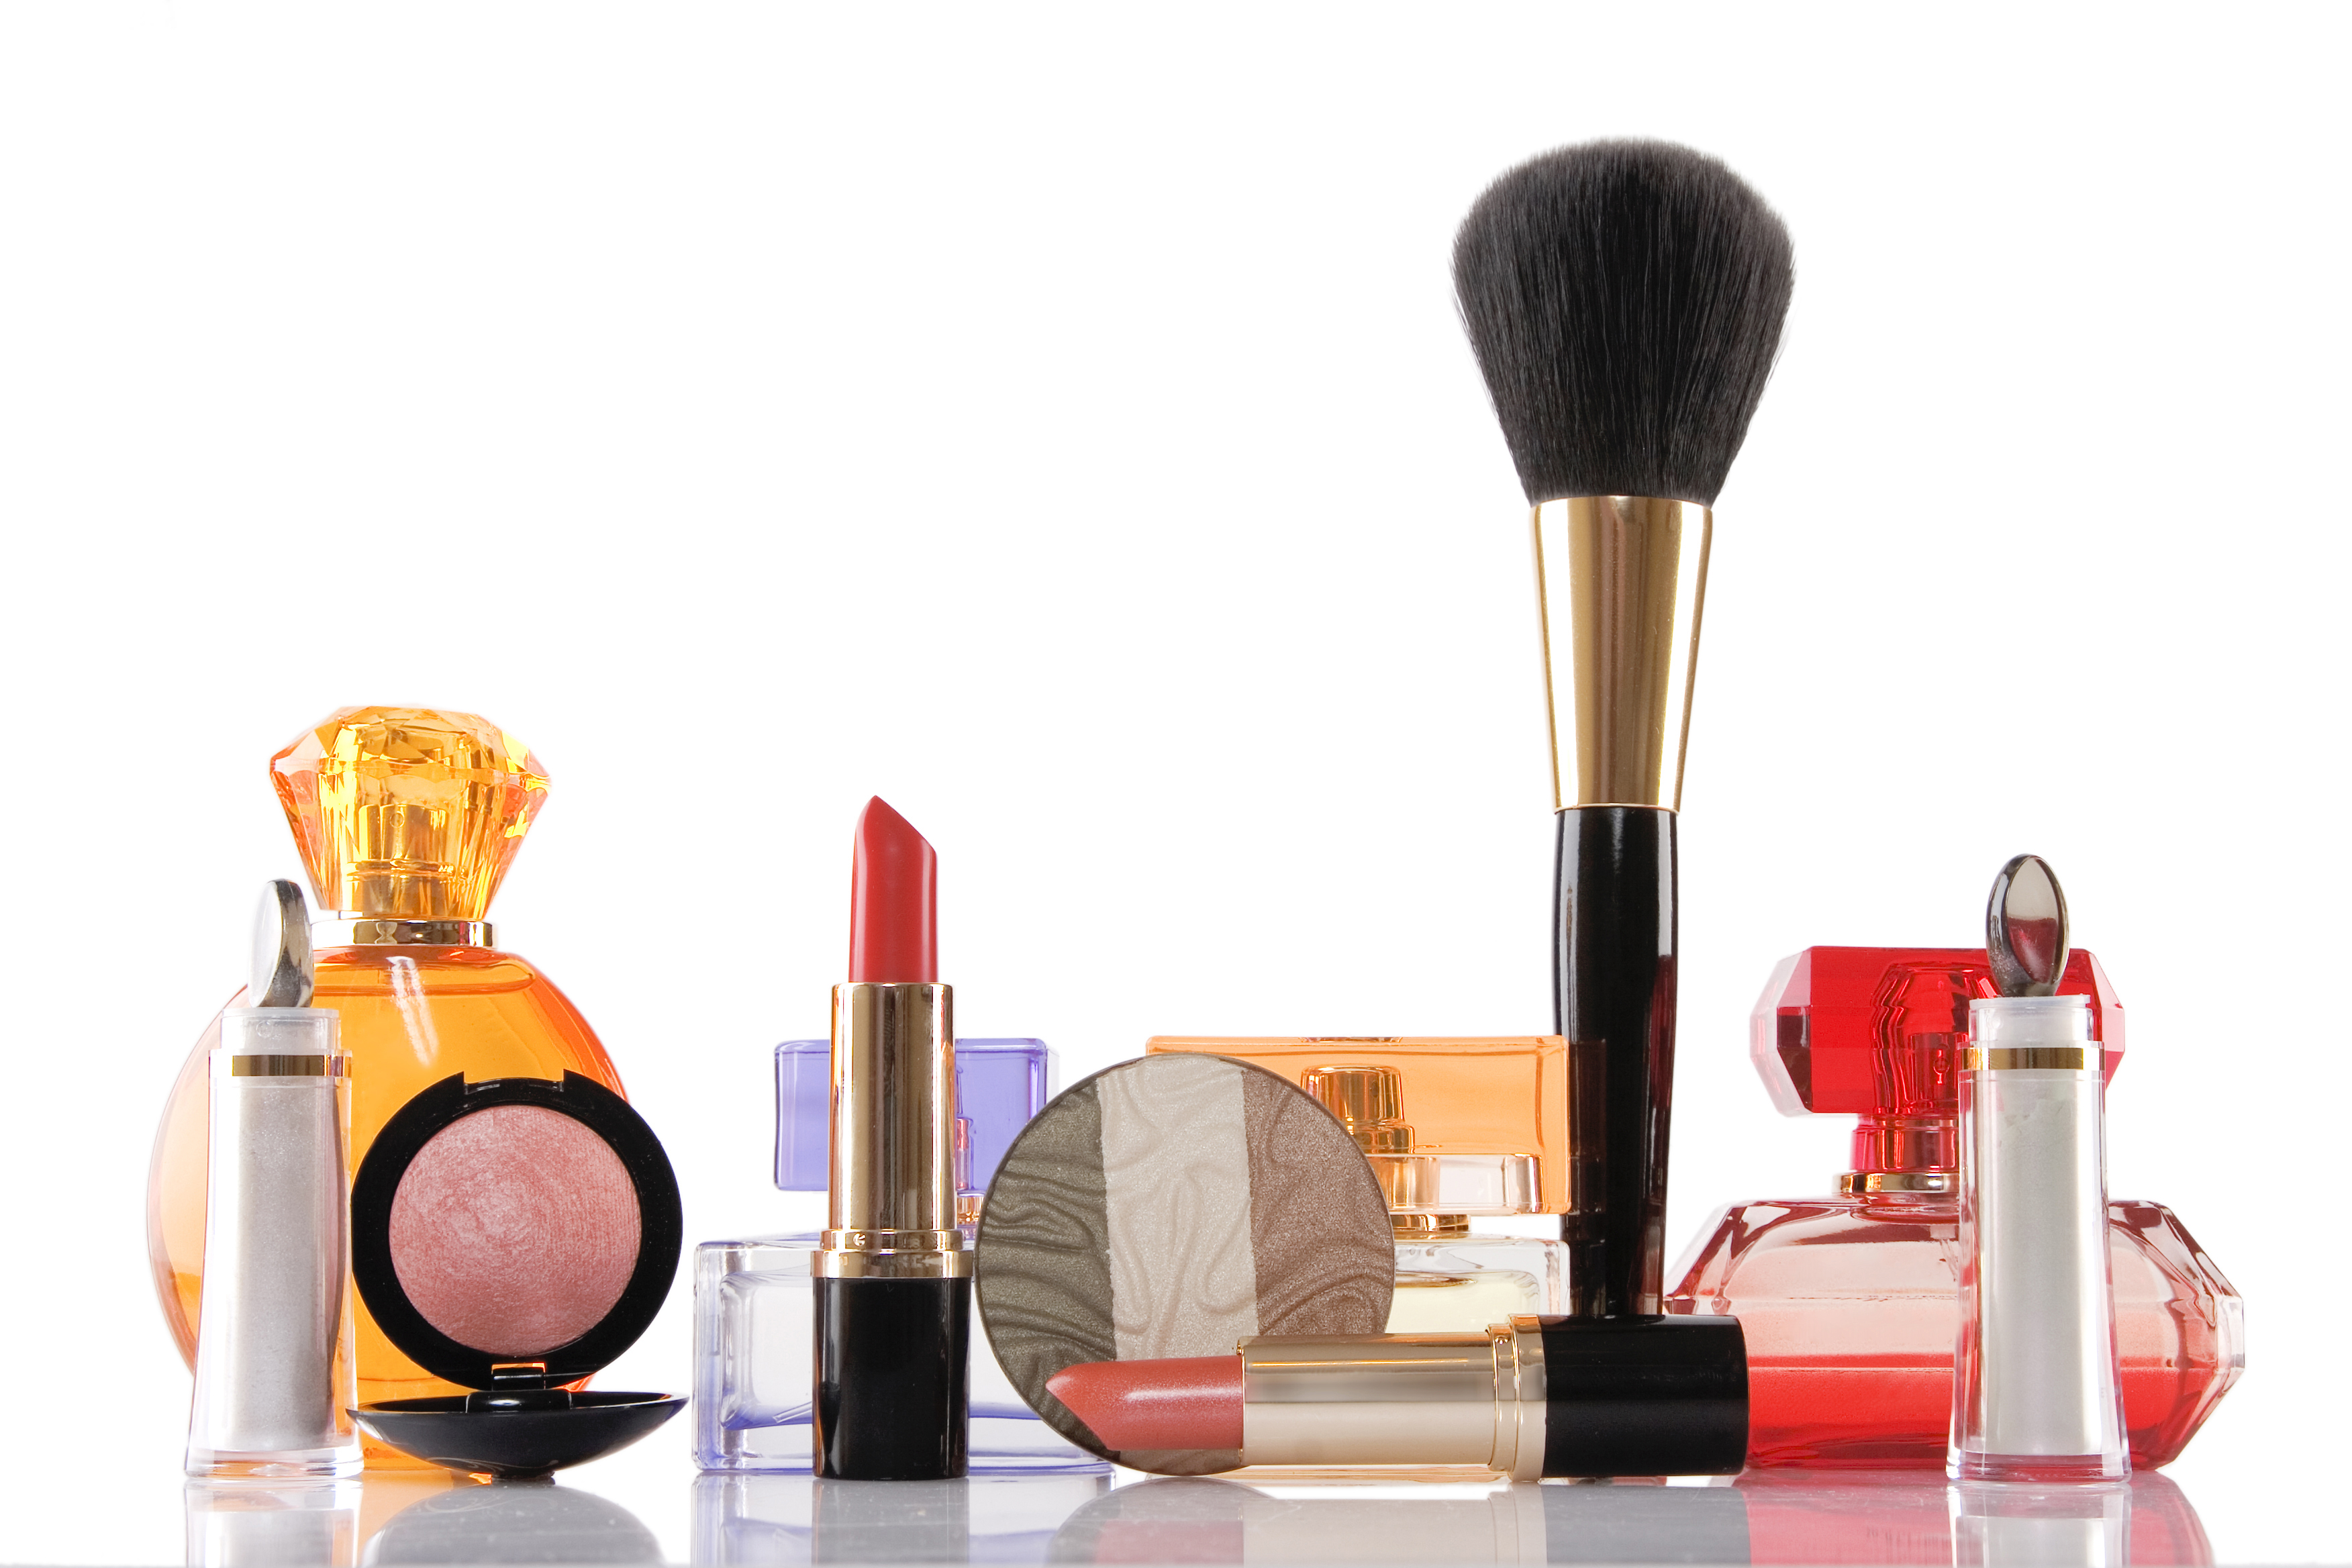 Airbrush Makeup Systems